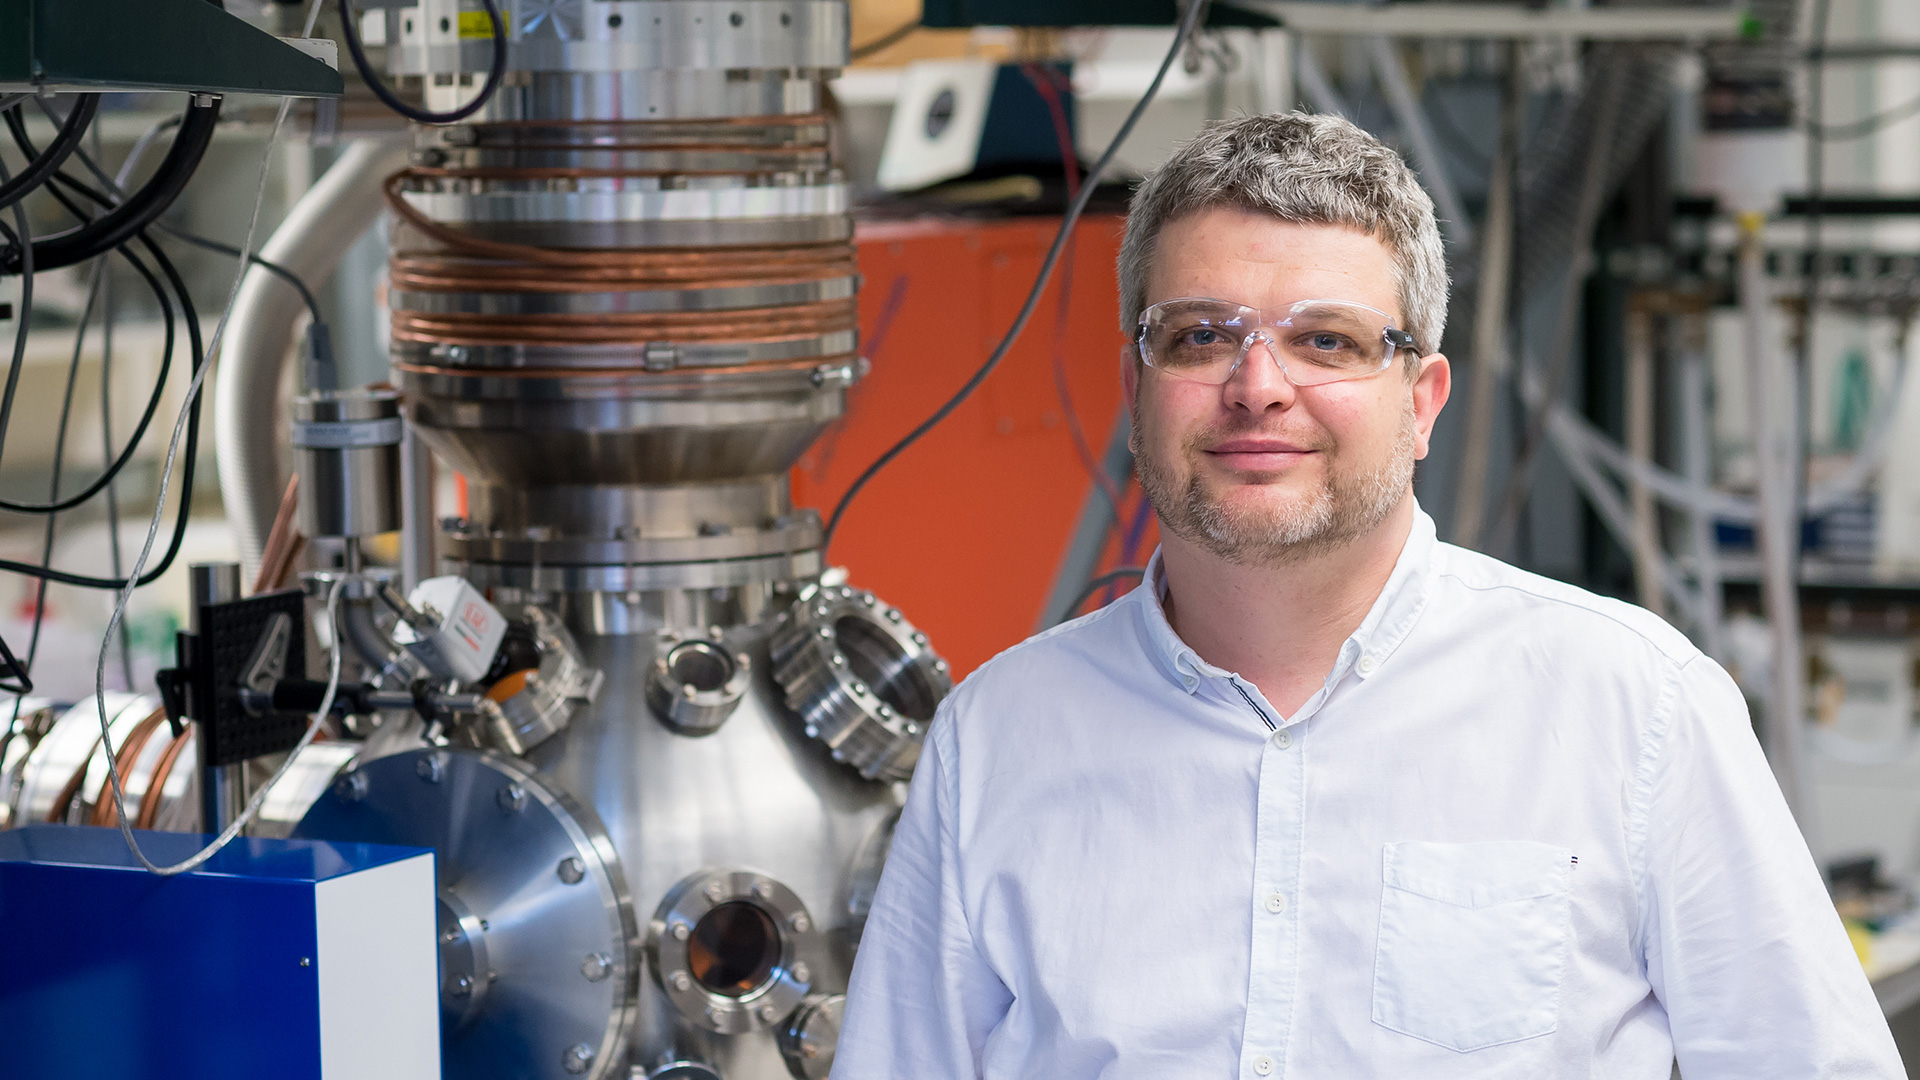 Kirill Prozument of the RAINet team. Not pictured from the RAINet team is Daniel Zaleski. (Image by Argonne National Laboratory.)